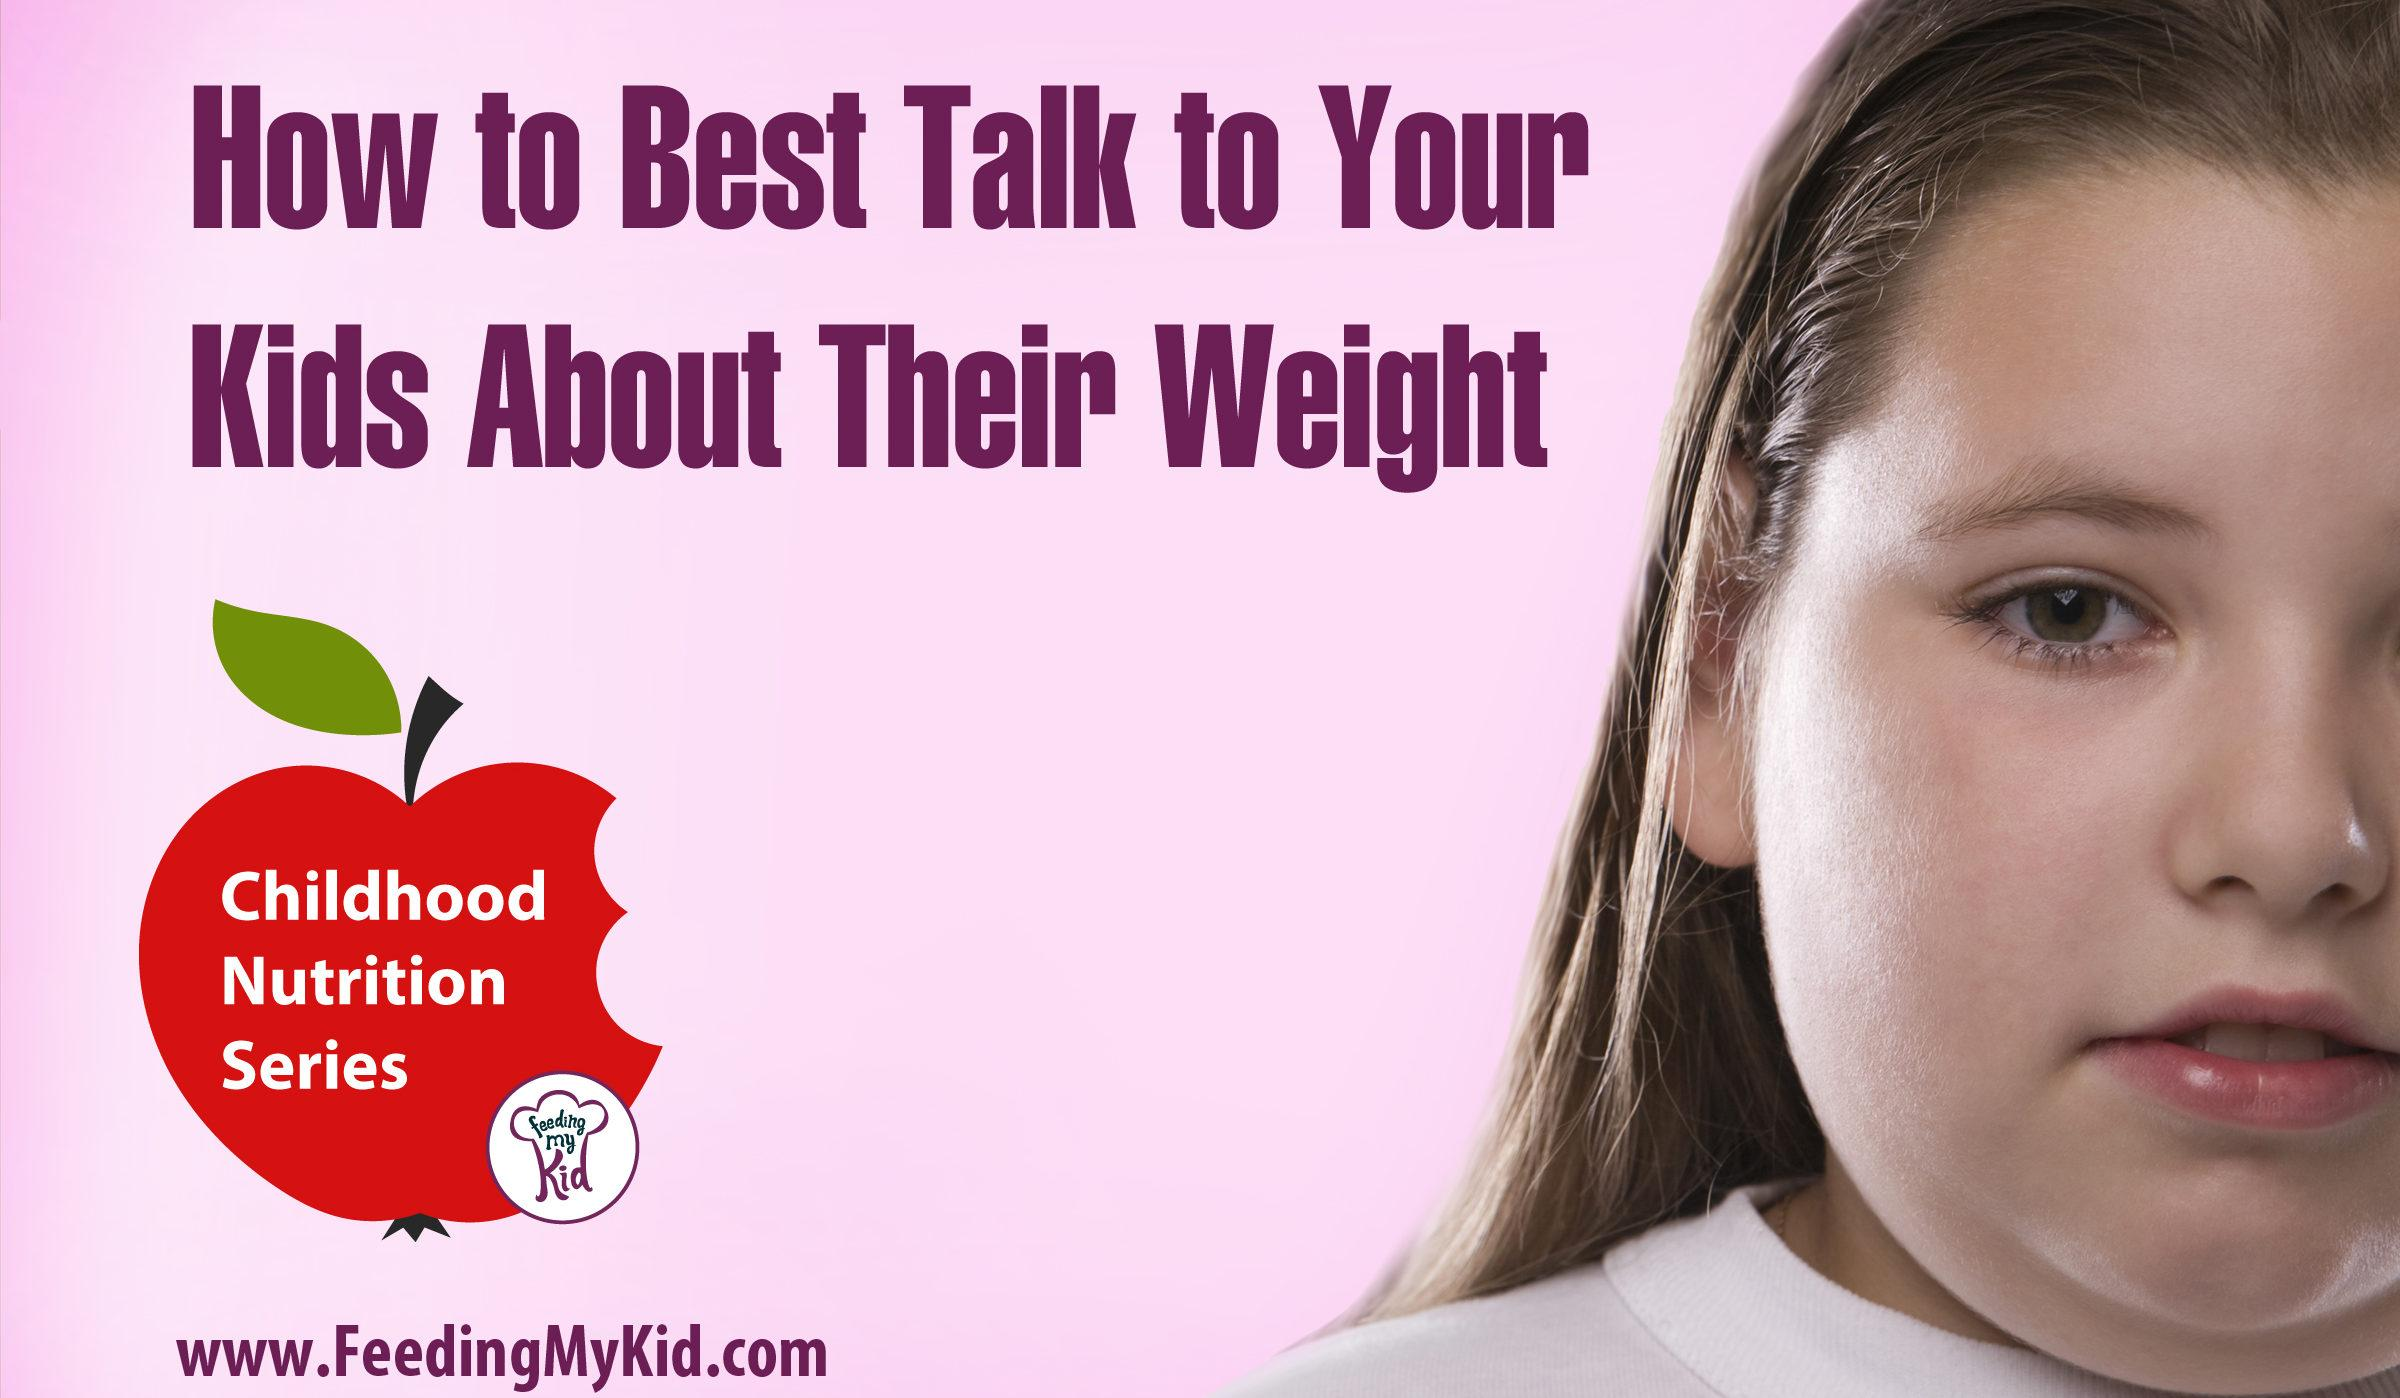 How to Best Talk to Your Kids About Their Weight